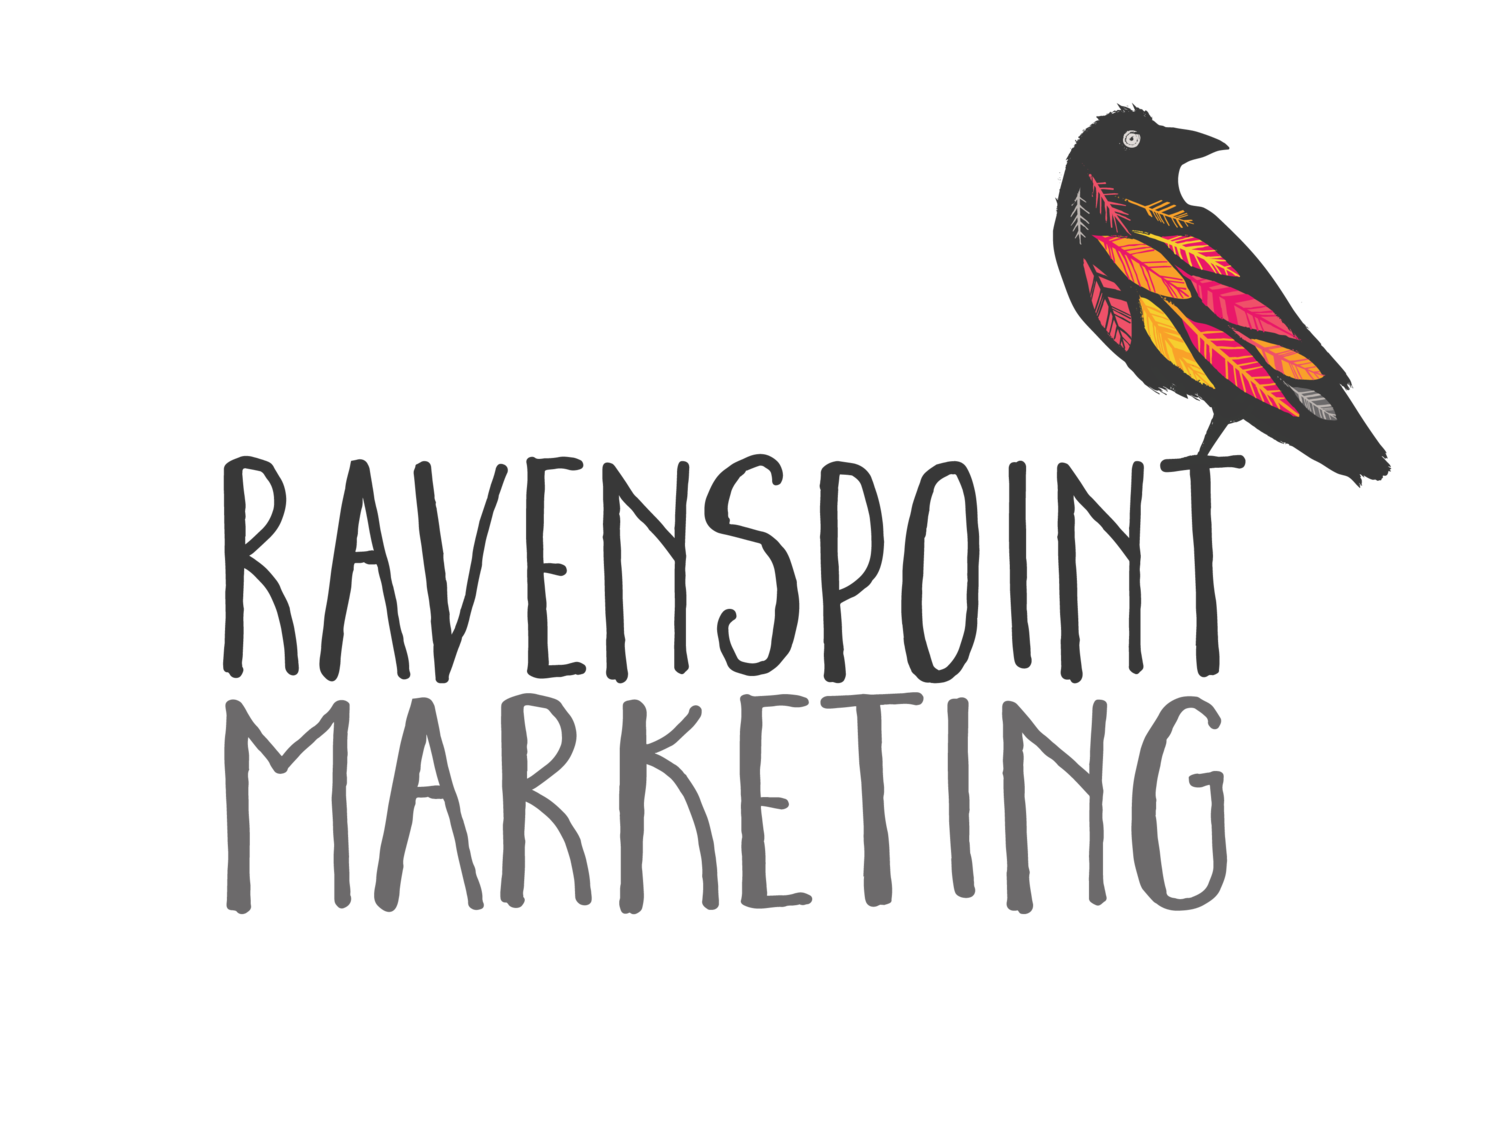 Ravenspoint Marketing | Website design and marketing support | Cheshire, Shropshire & North Wales